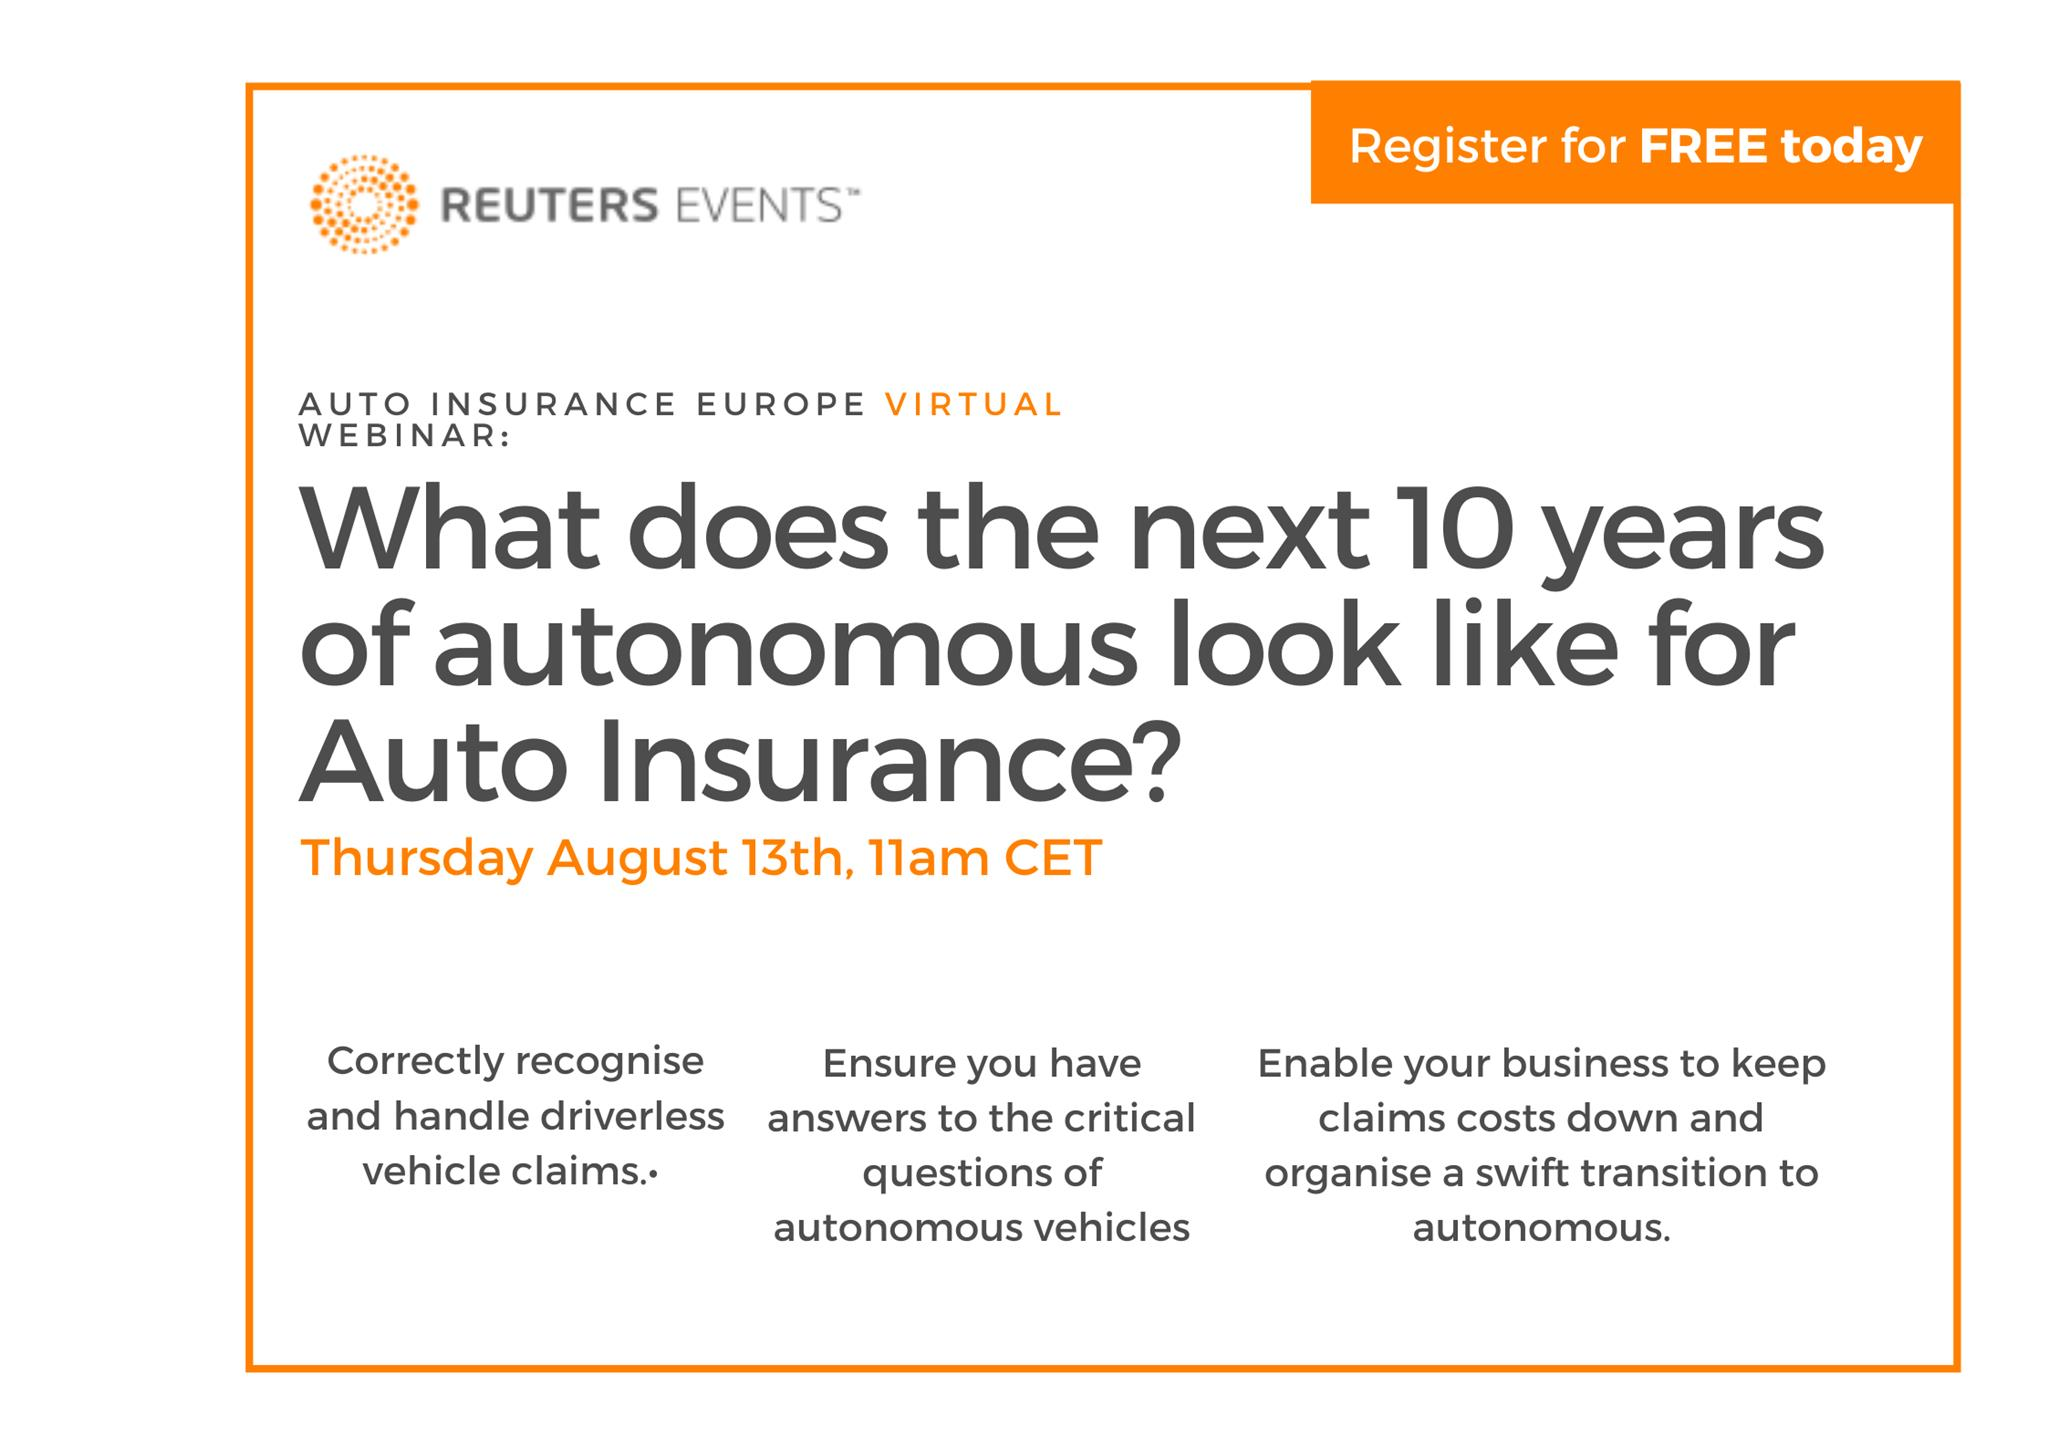 How do we plan for the next 10 years of autonomous vehicles? organized by Reuters Events